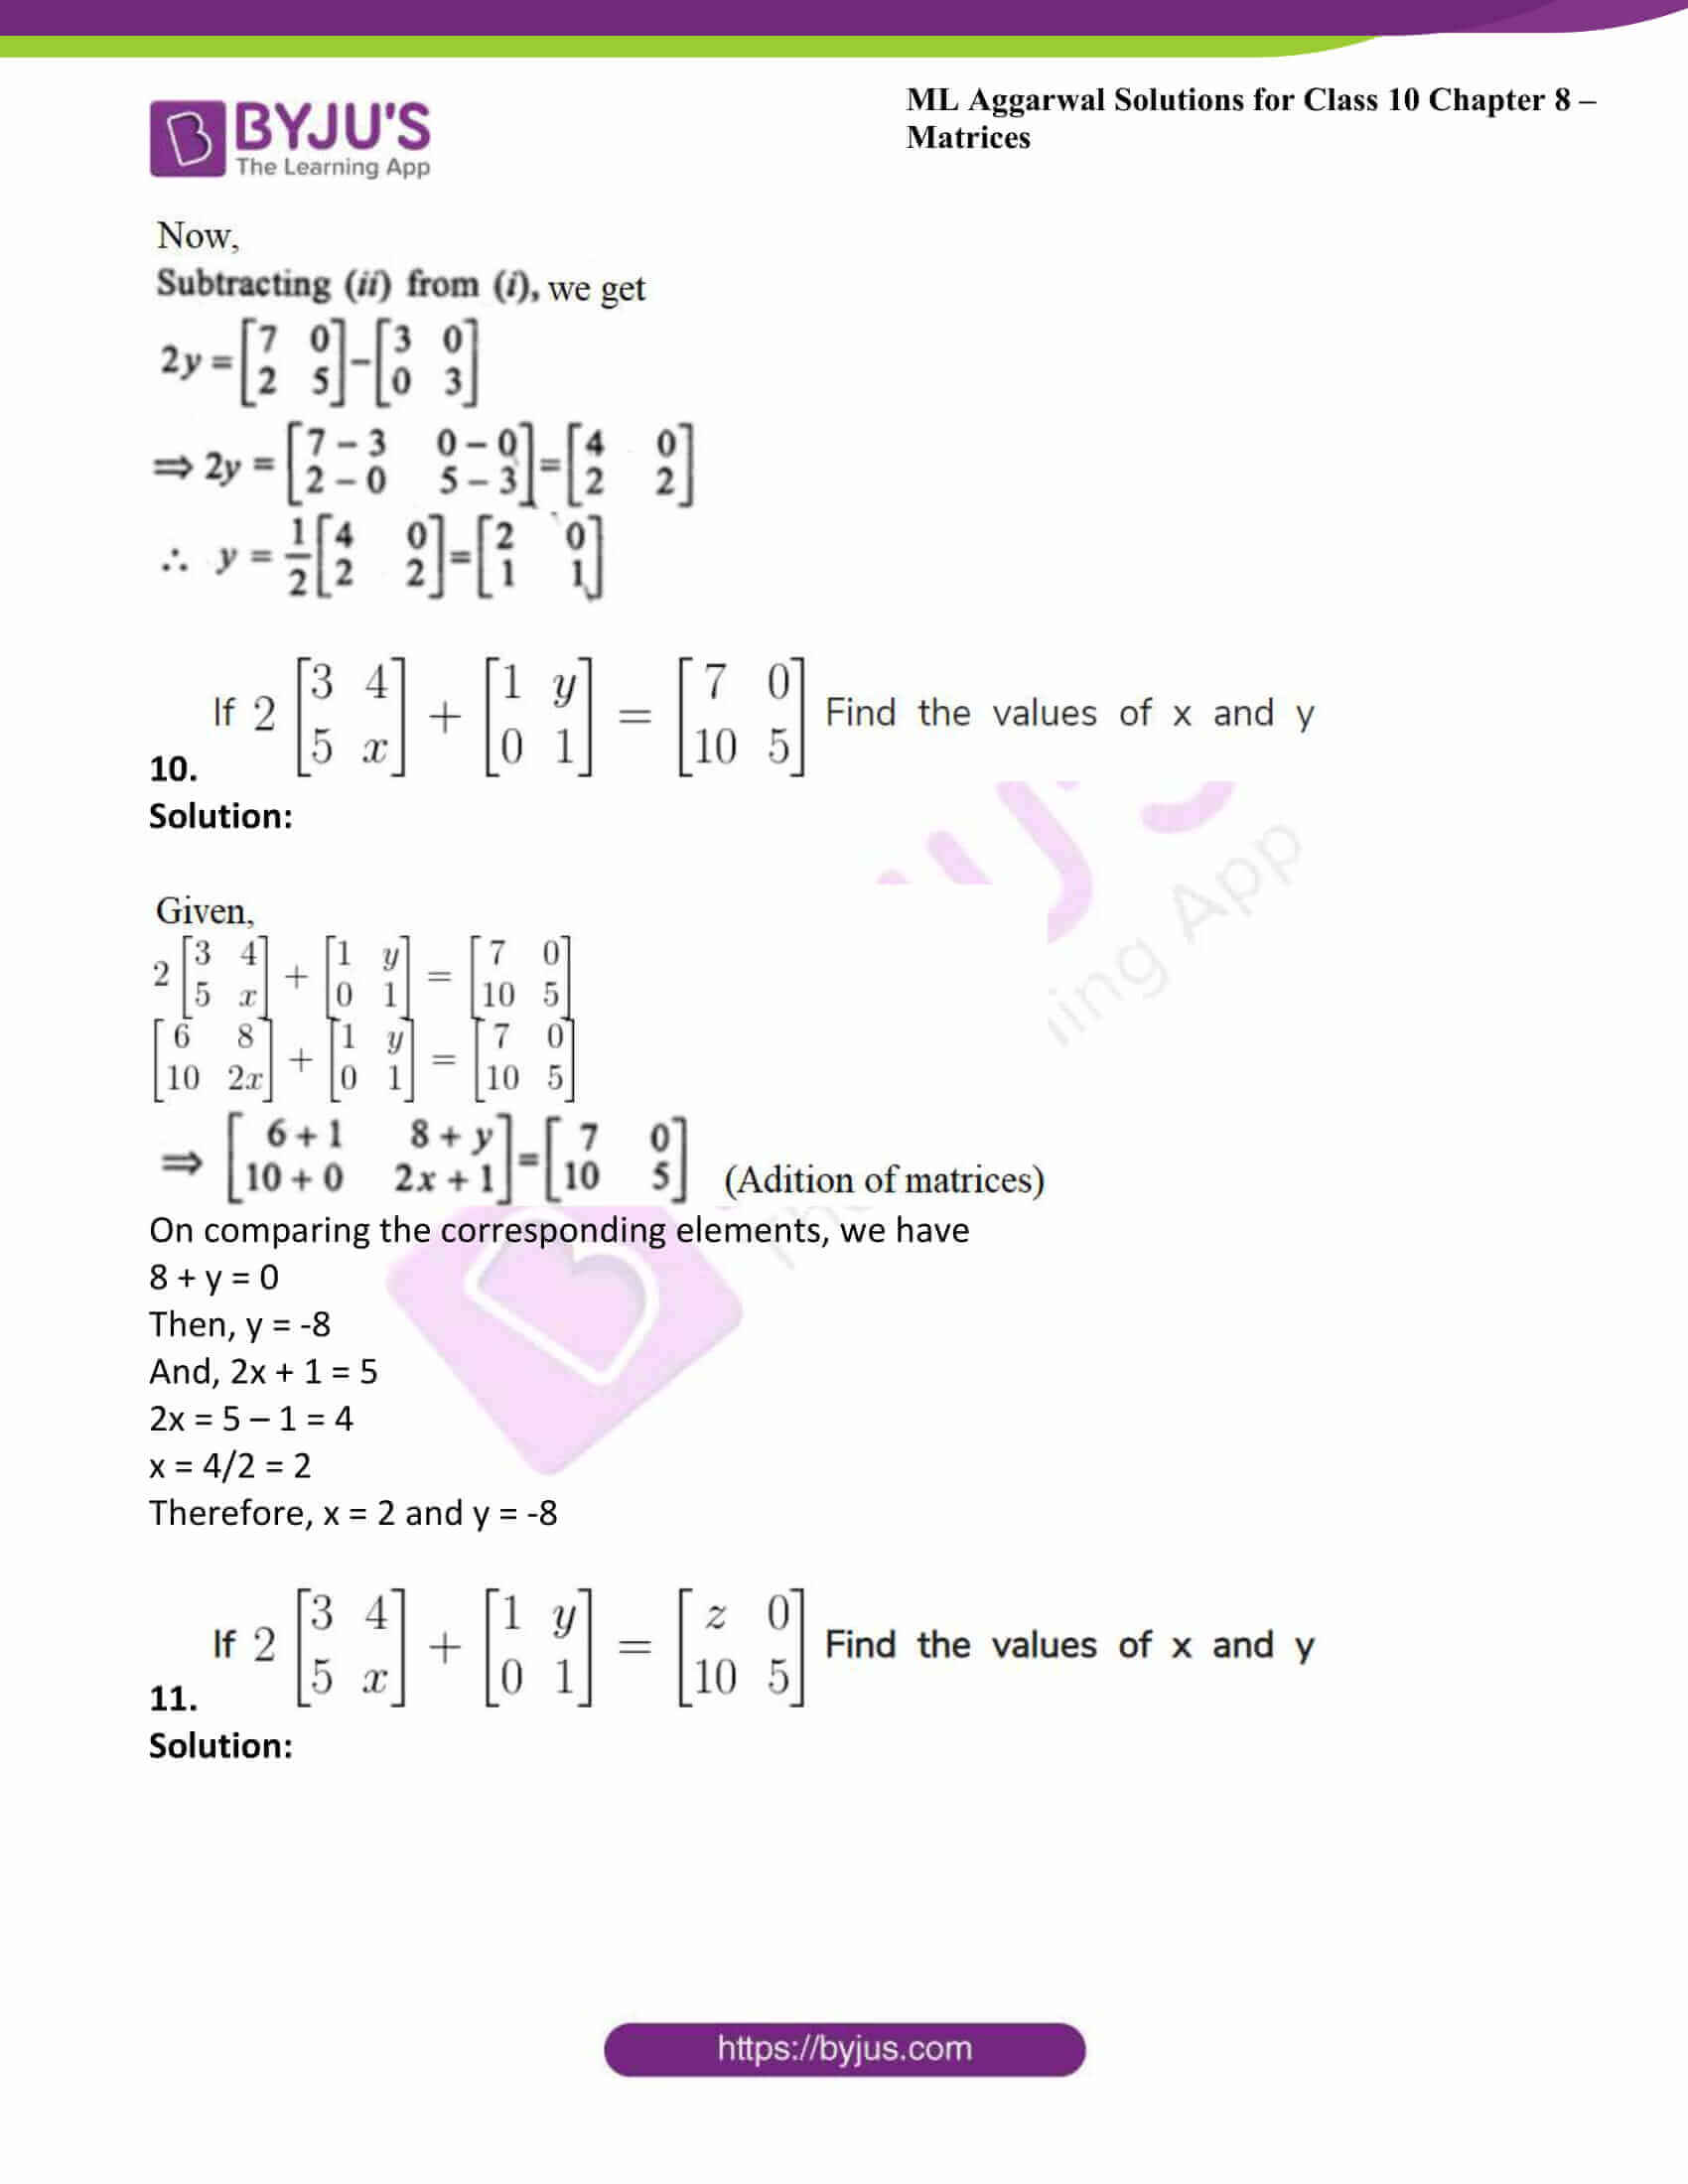 ml aggarwal solutions class 10 maths chapter 8 14